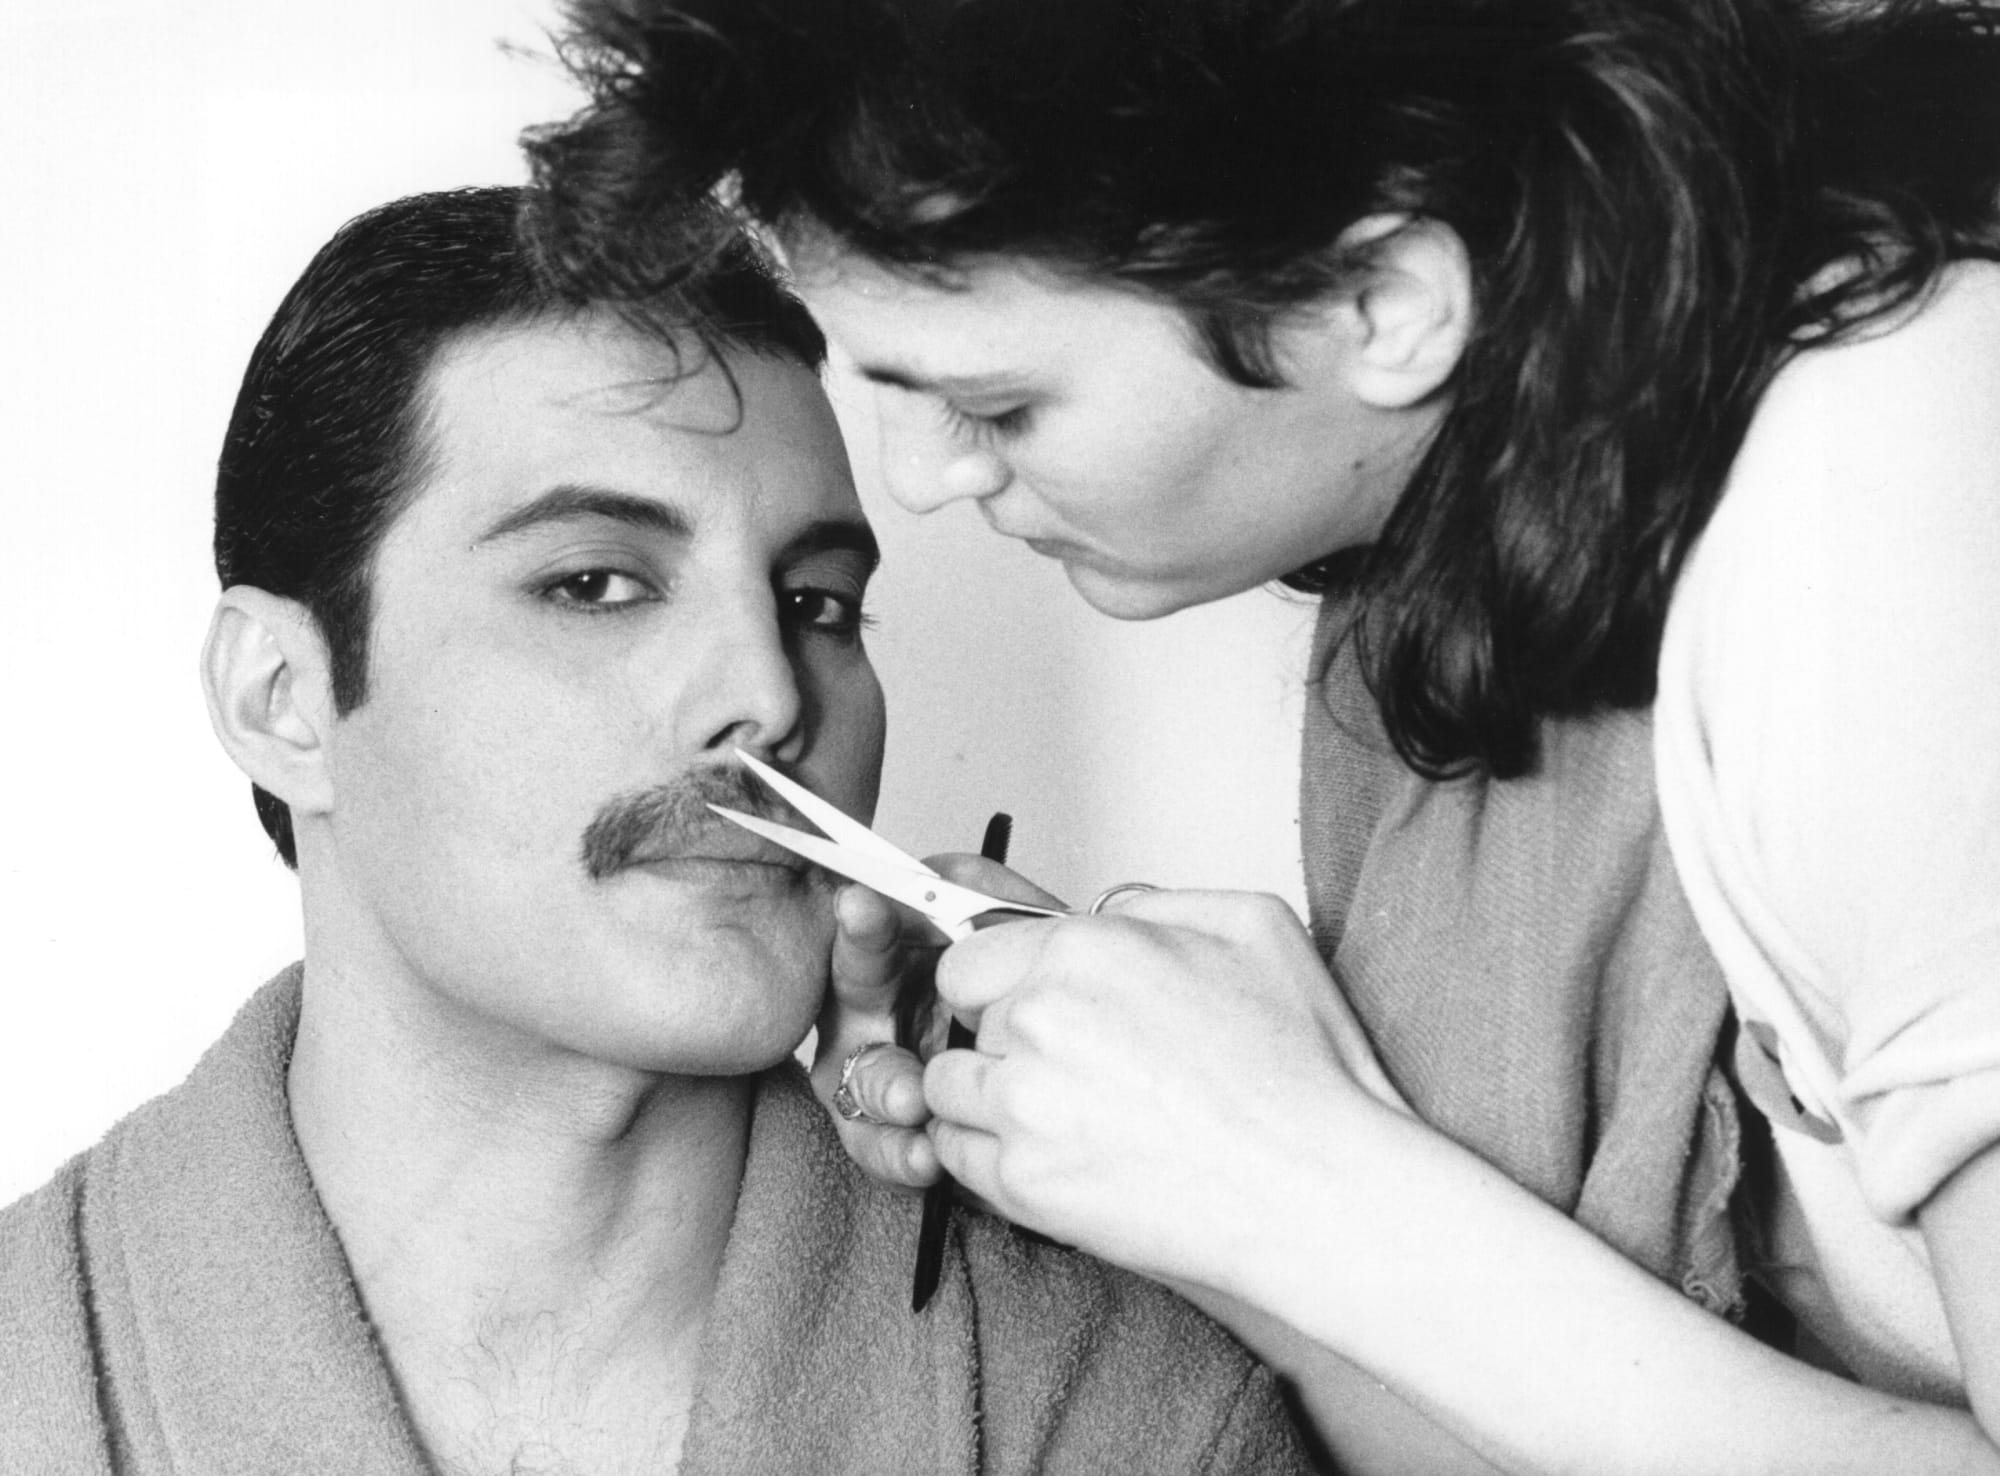 4 1982 rock singer freddie mercury frederick bulsara 1946 1991 of the popular british group queen has his moustache groomed photo by steve woodexpressgetty images